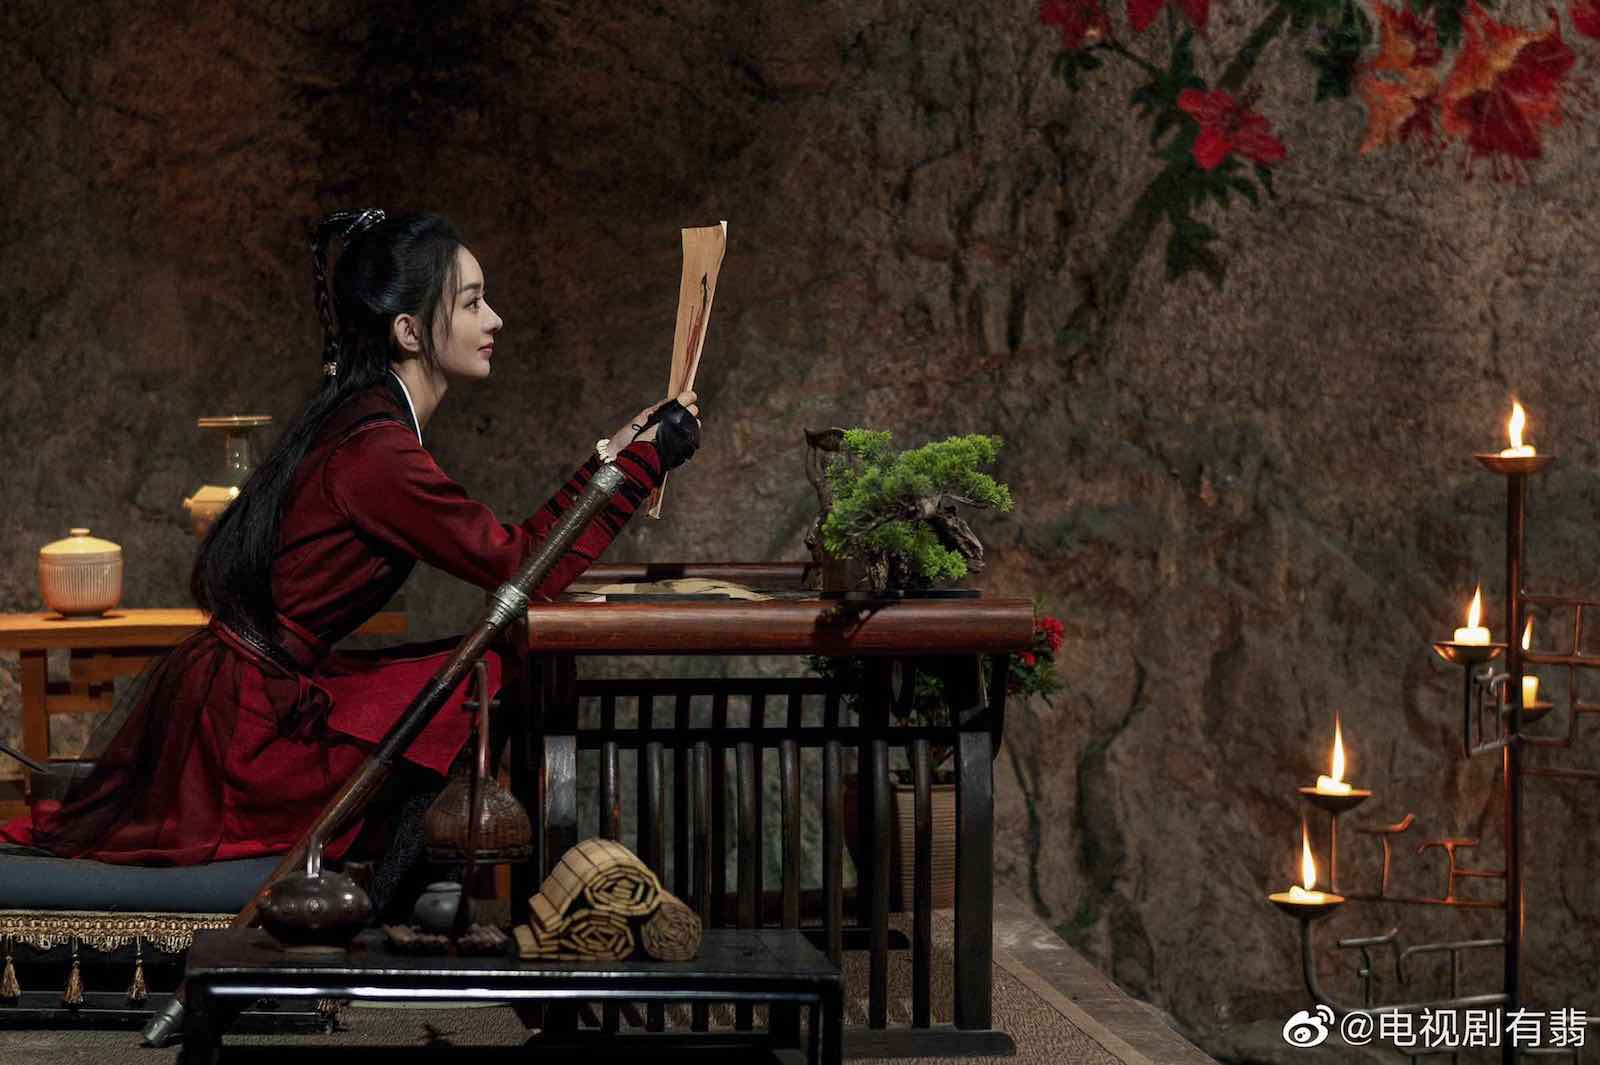 Fans of 'The Untamed' helped make Wang Yibo an international star. Now, Yibo is back on TV in 'Legend of Fei'. Get to know Wang Yibo's new show.